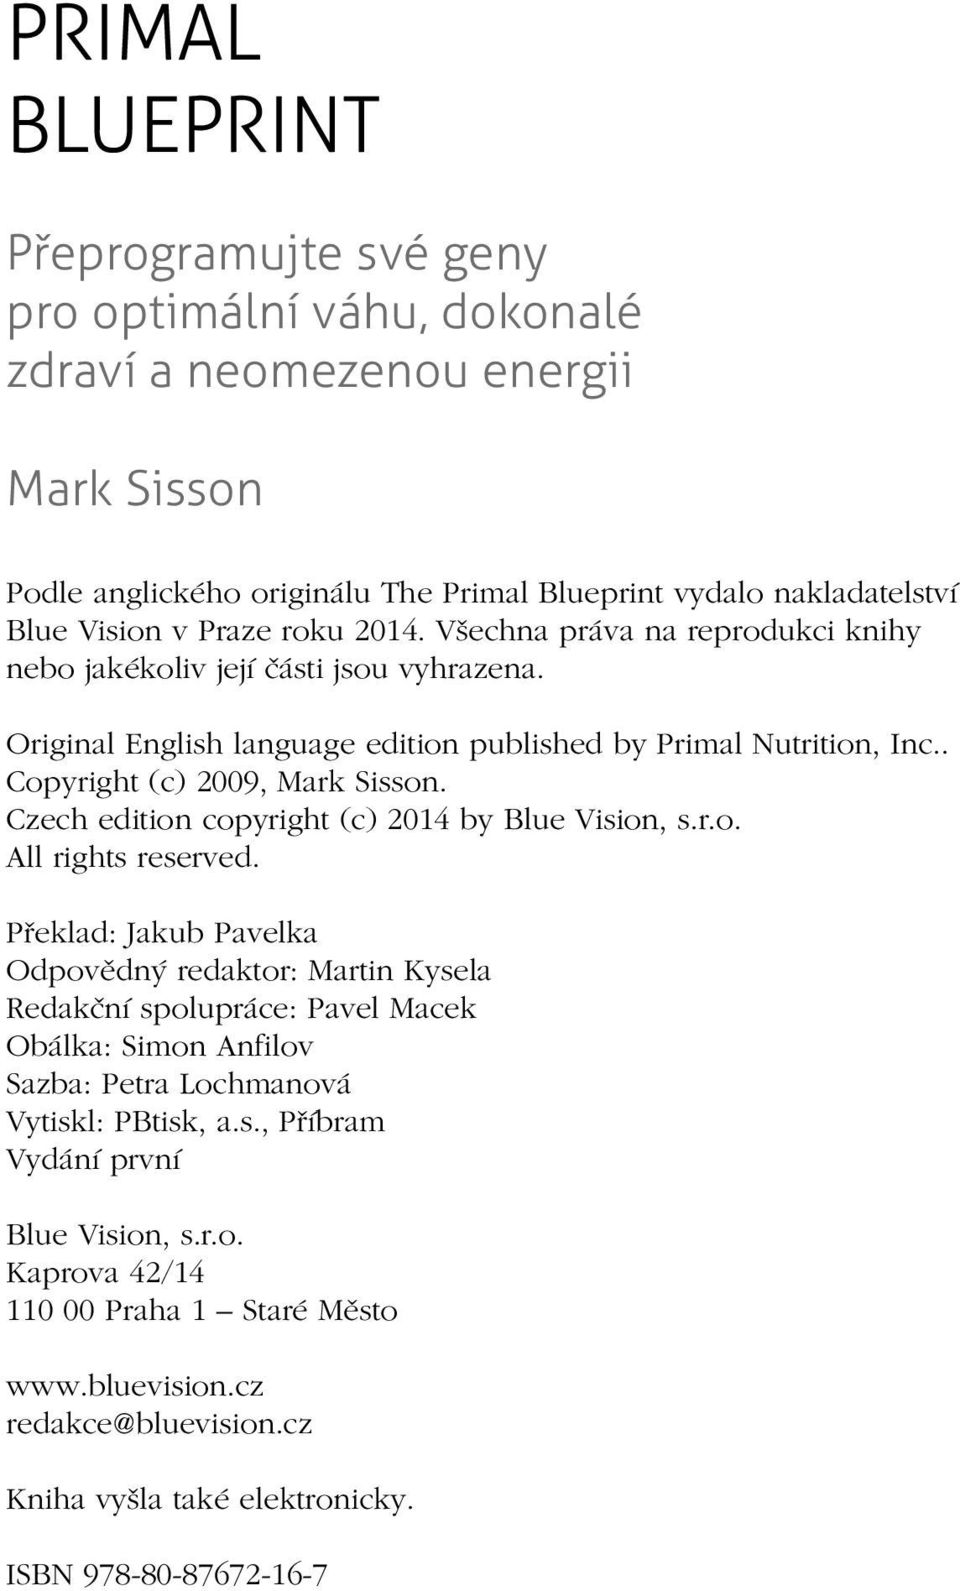 Czech edition copyright (c) 2014 by Blue Vision, s.r.o. All rights reserved.